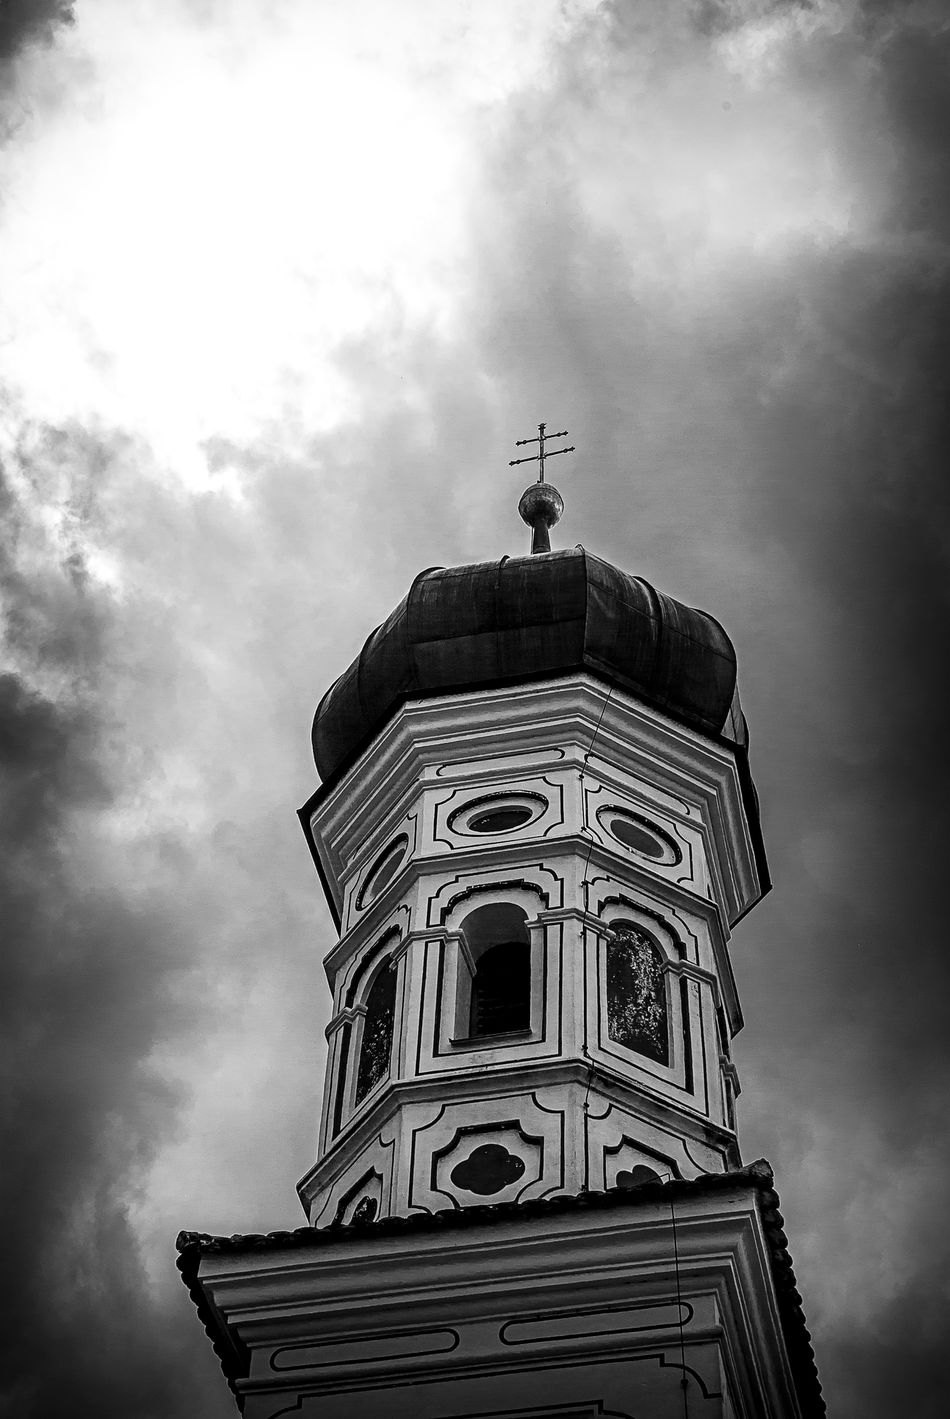 Architecture Building Exterior Built Structure Church Cloud - Sky Etting Kirche Place Of Worship Polling Religion Sky St. Andreas Kirche Weilheim EyeEmNewHere